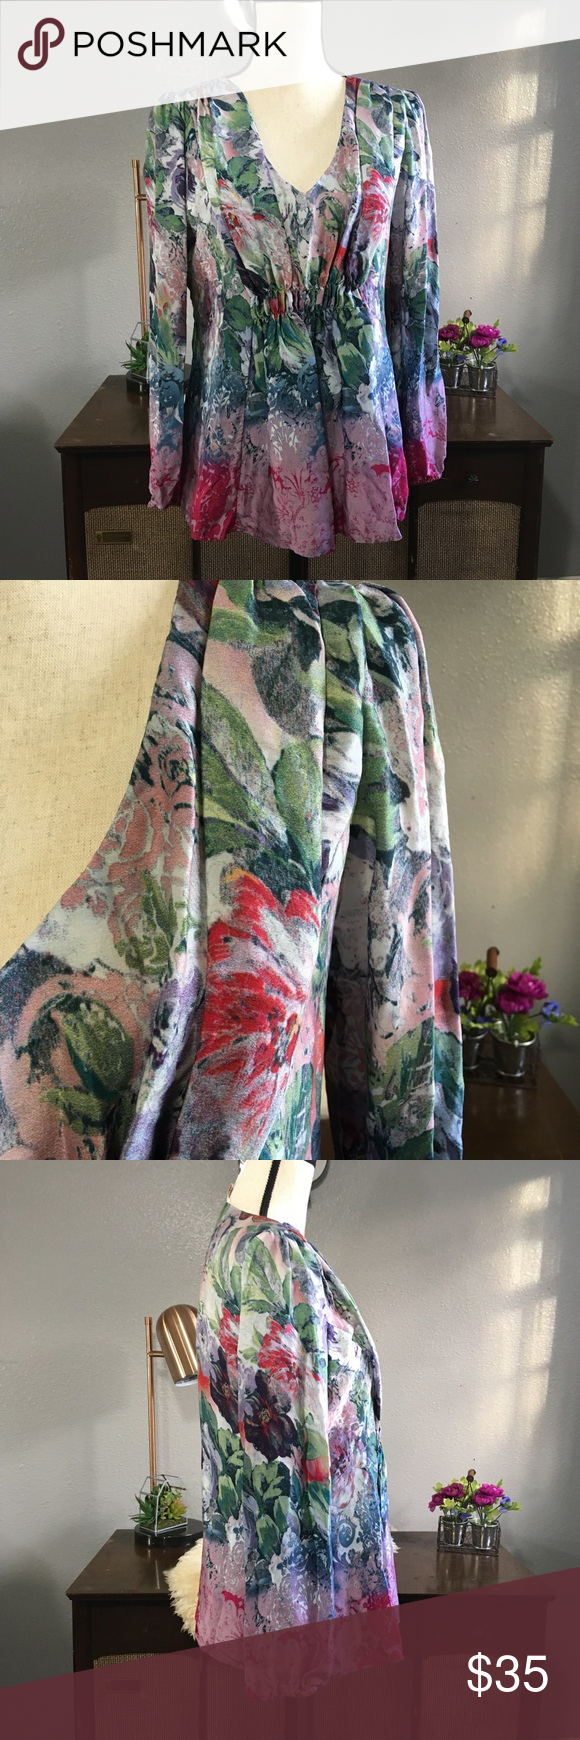 Sundance silk floral v neck blouse lined medium Beautiful multicolored floral silk long sleeve blouse from Sundance size medium. Exterior is 100% silk lining 100% polyester. Free of stains tears and holes. Measurements upon request Sundance Tops Blouses